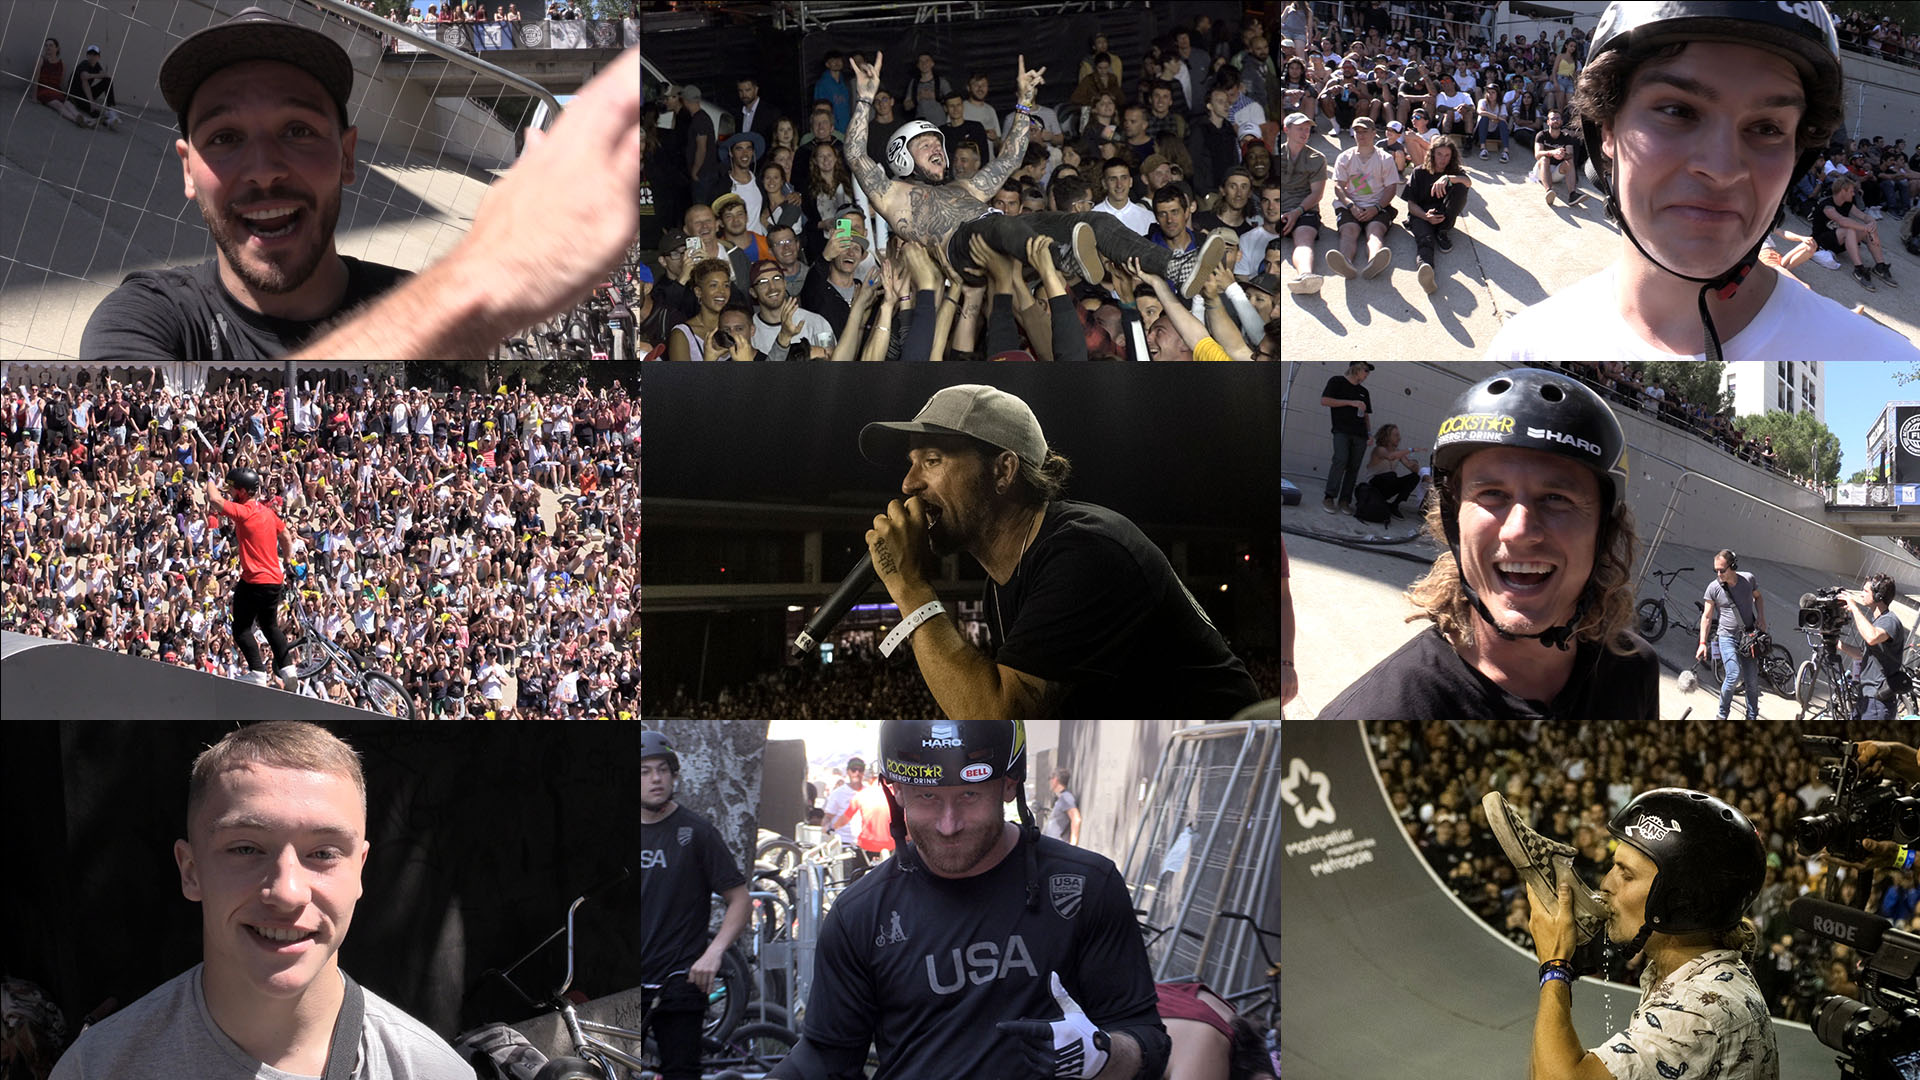 VIDEO REPORT: FISE Montpellier 2019